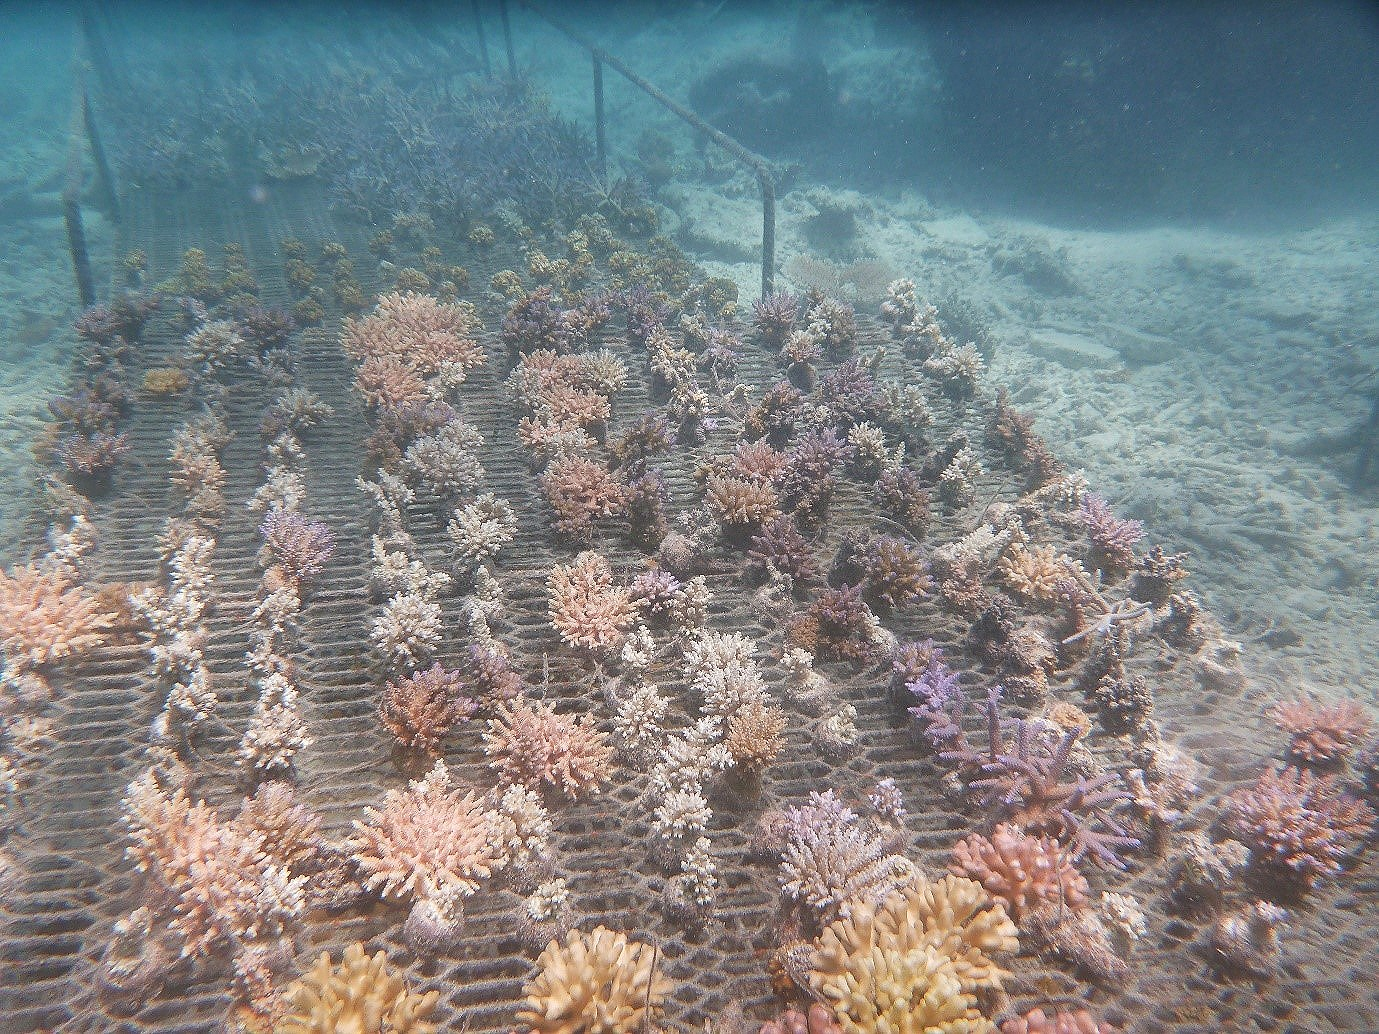 Figure 1. Corals growing on ocean racks.